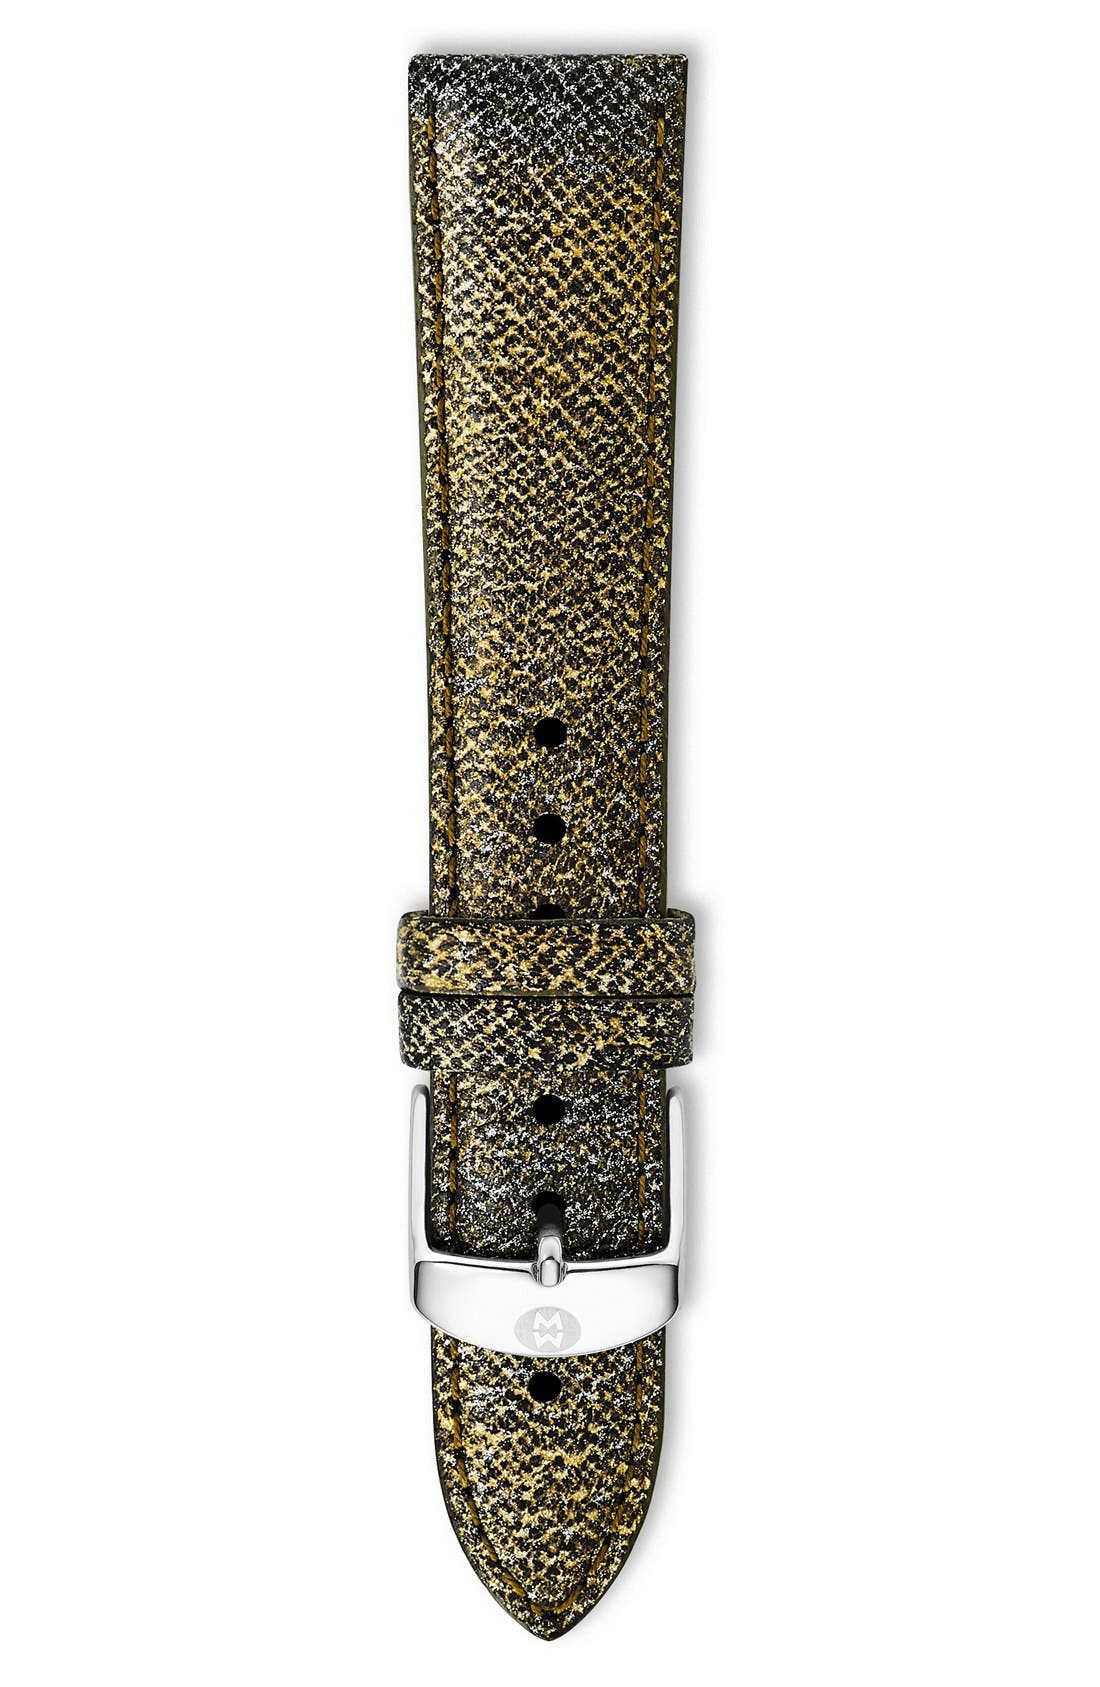 18mm Saffiano Leather Watch Strap,                             Main thumbnail 6, color,